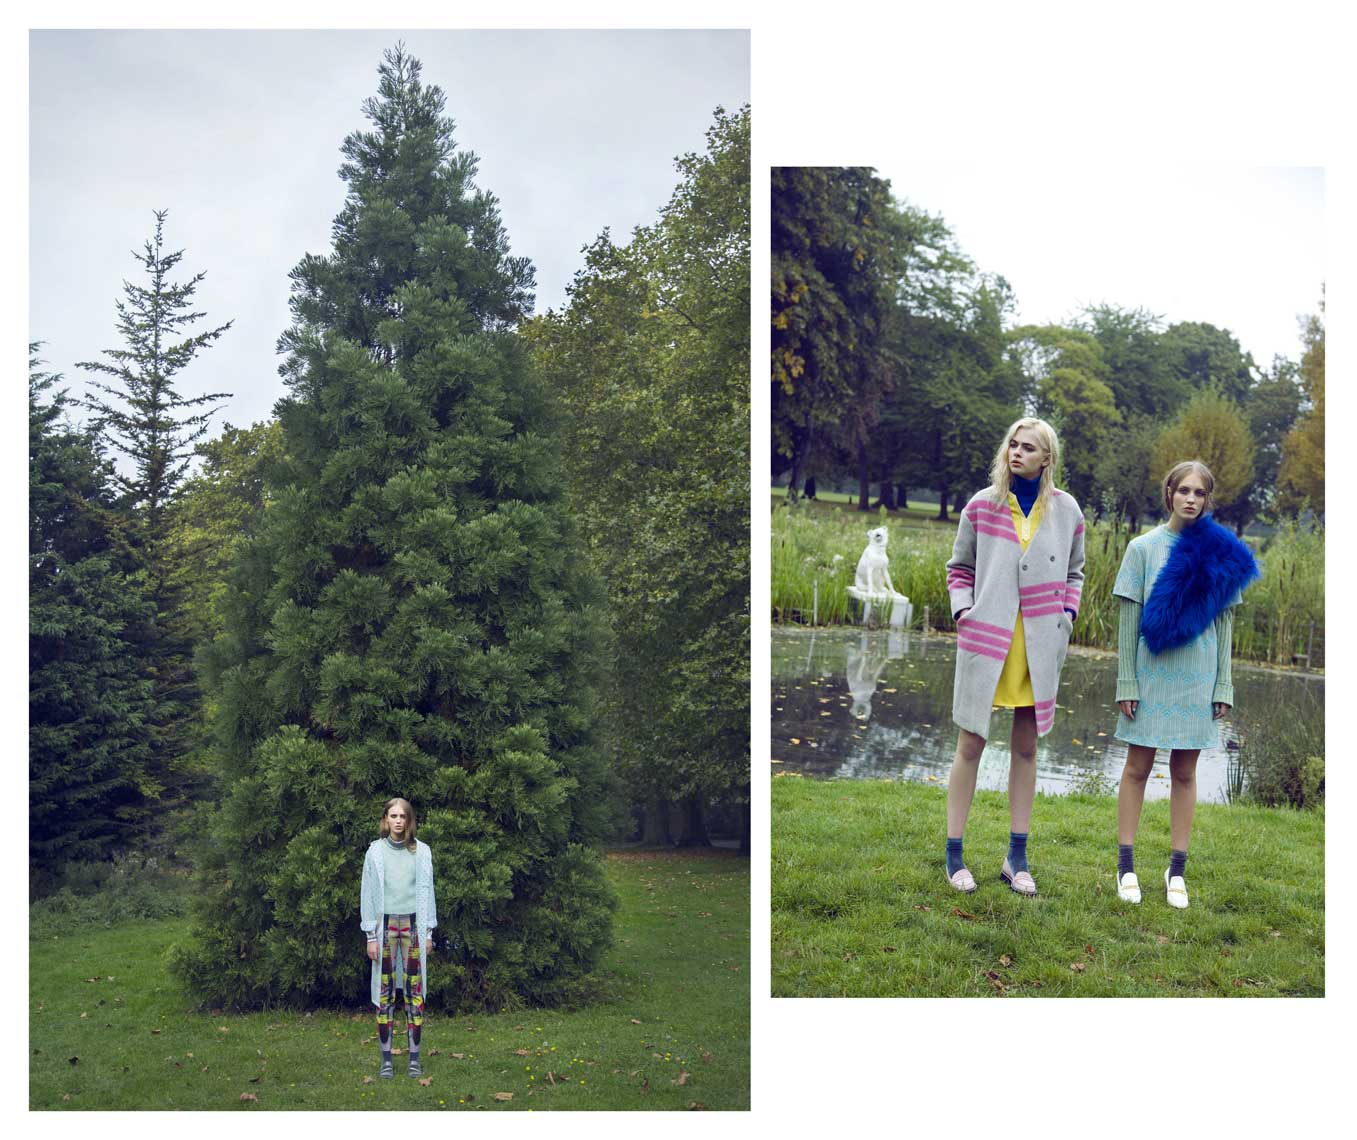 issie-gibbons-fashion-stylist-stories-collective-outdoors-tree-asos-stories-collective-marni-vintage